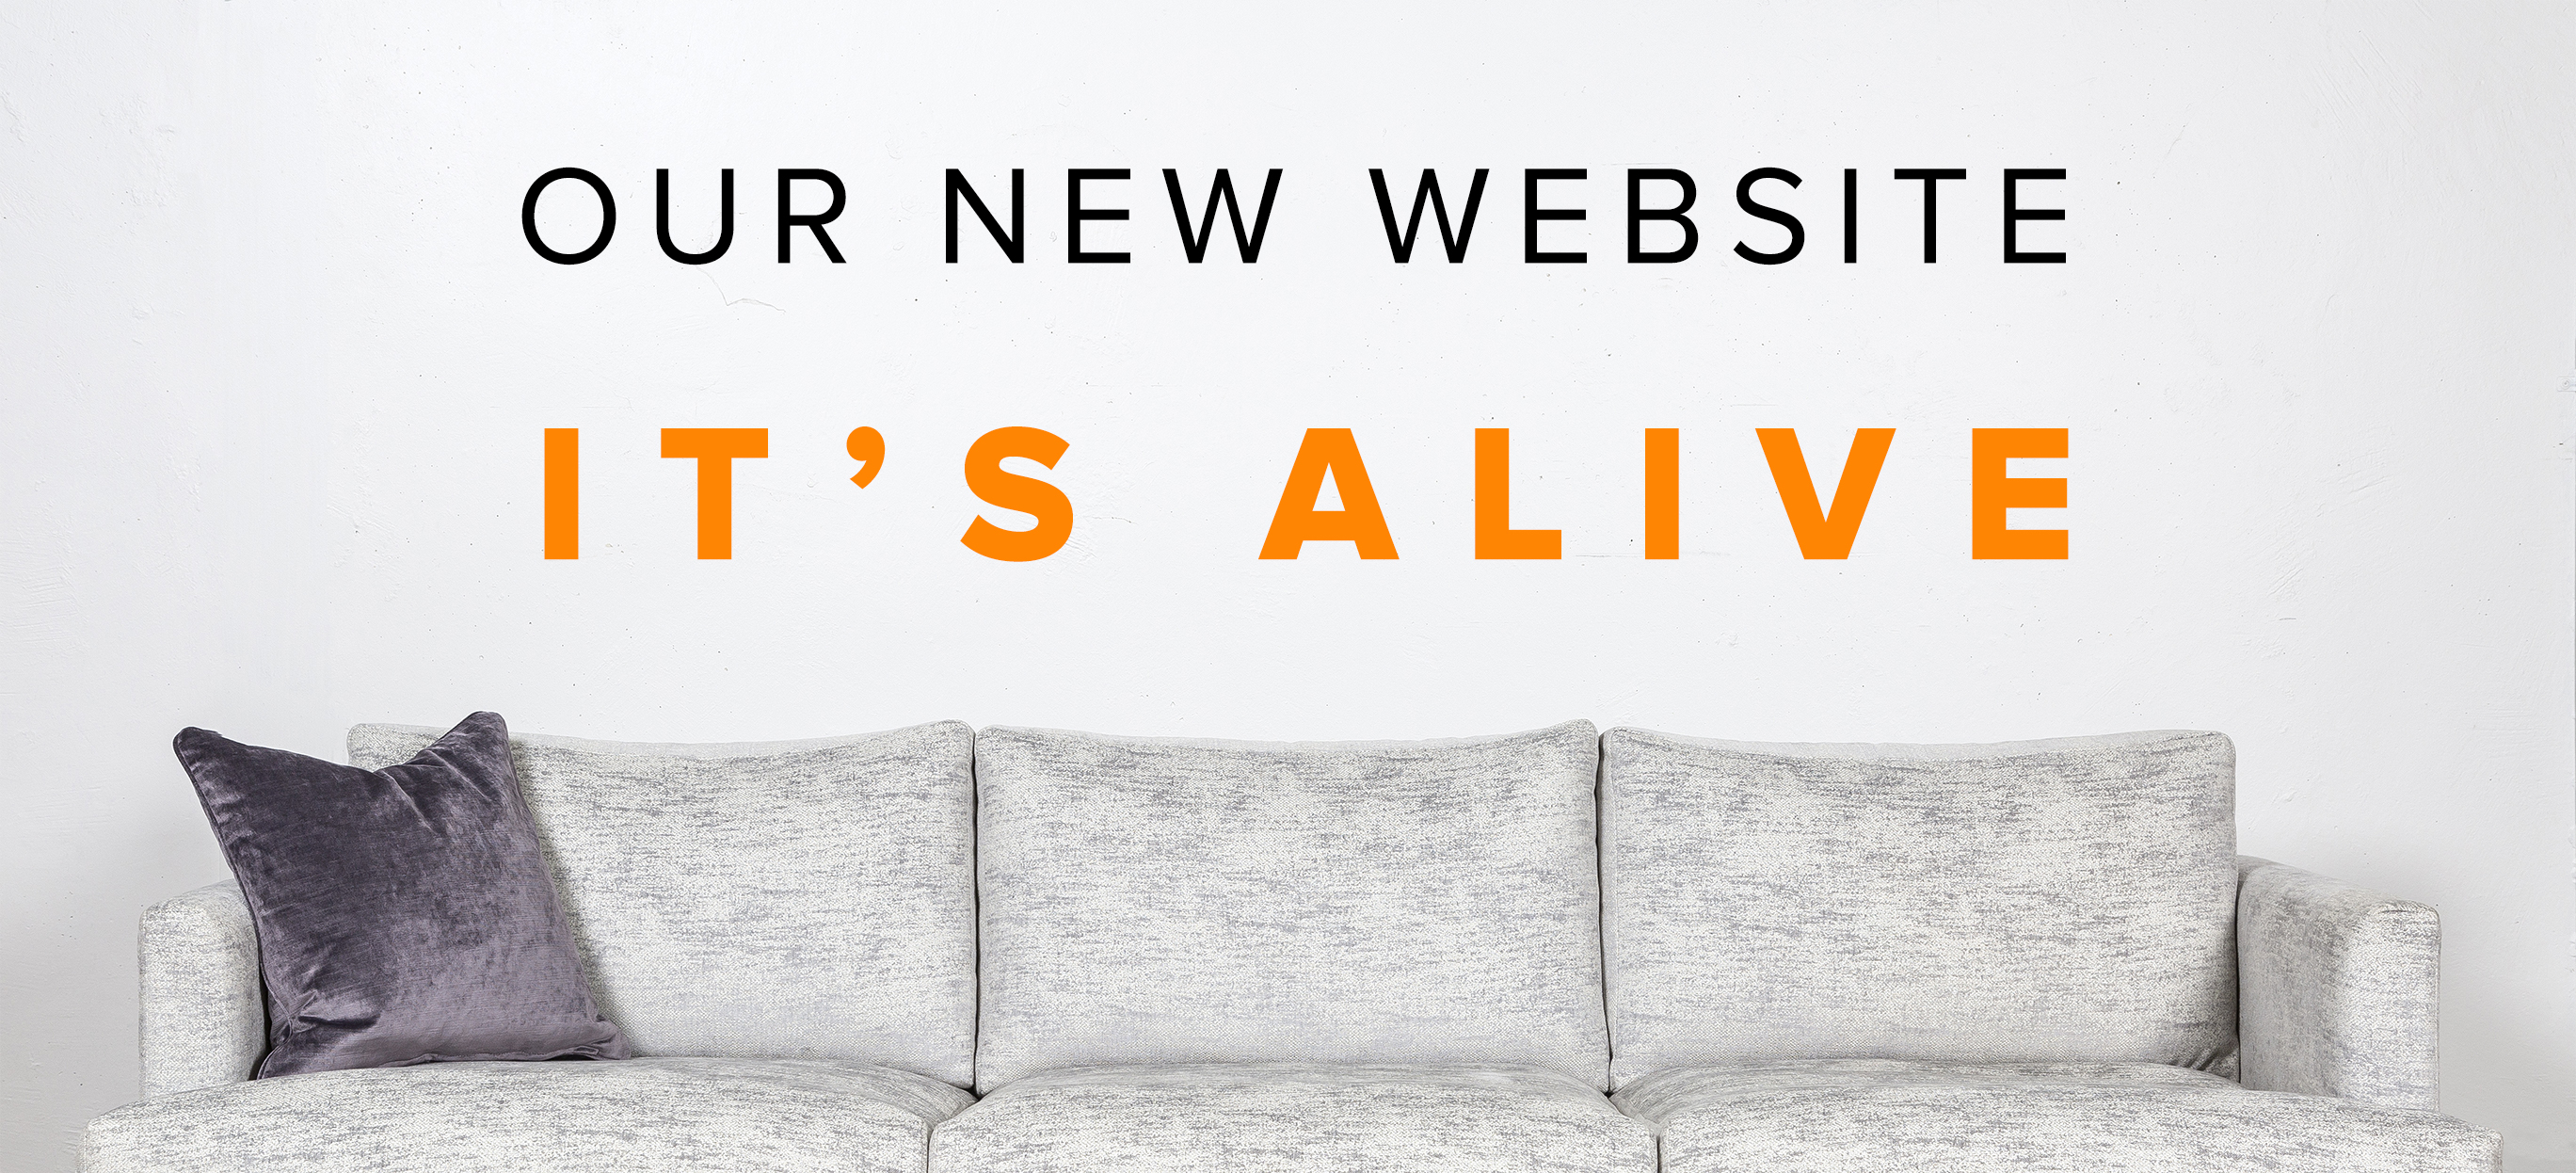 It's Alive! Our New Website That Is...